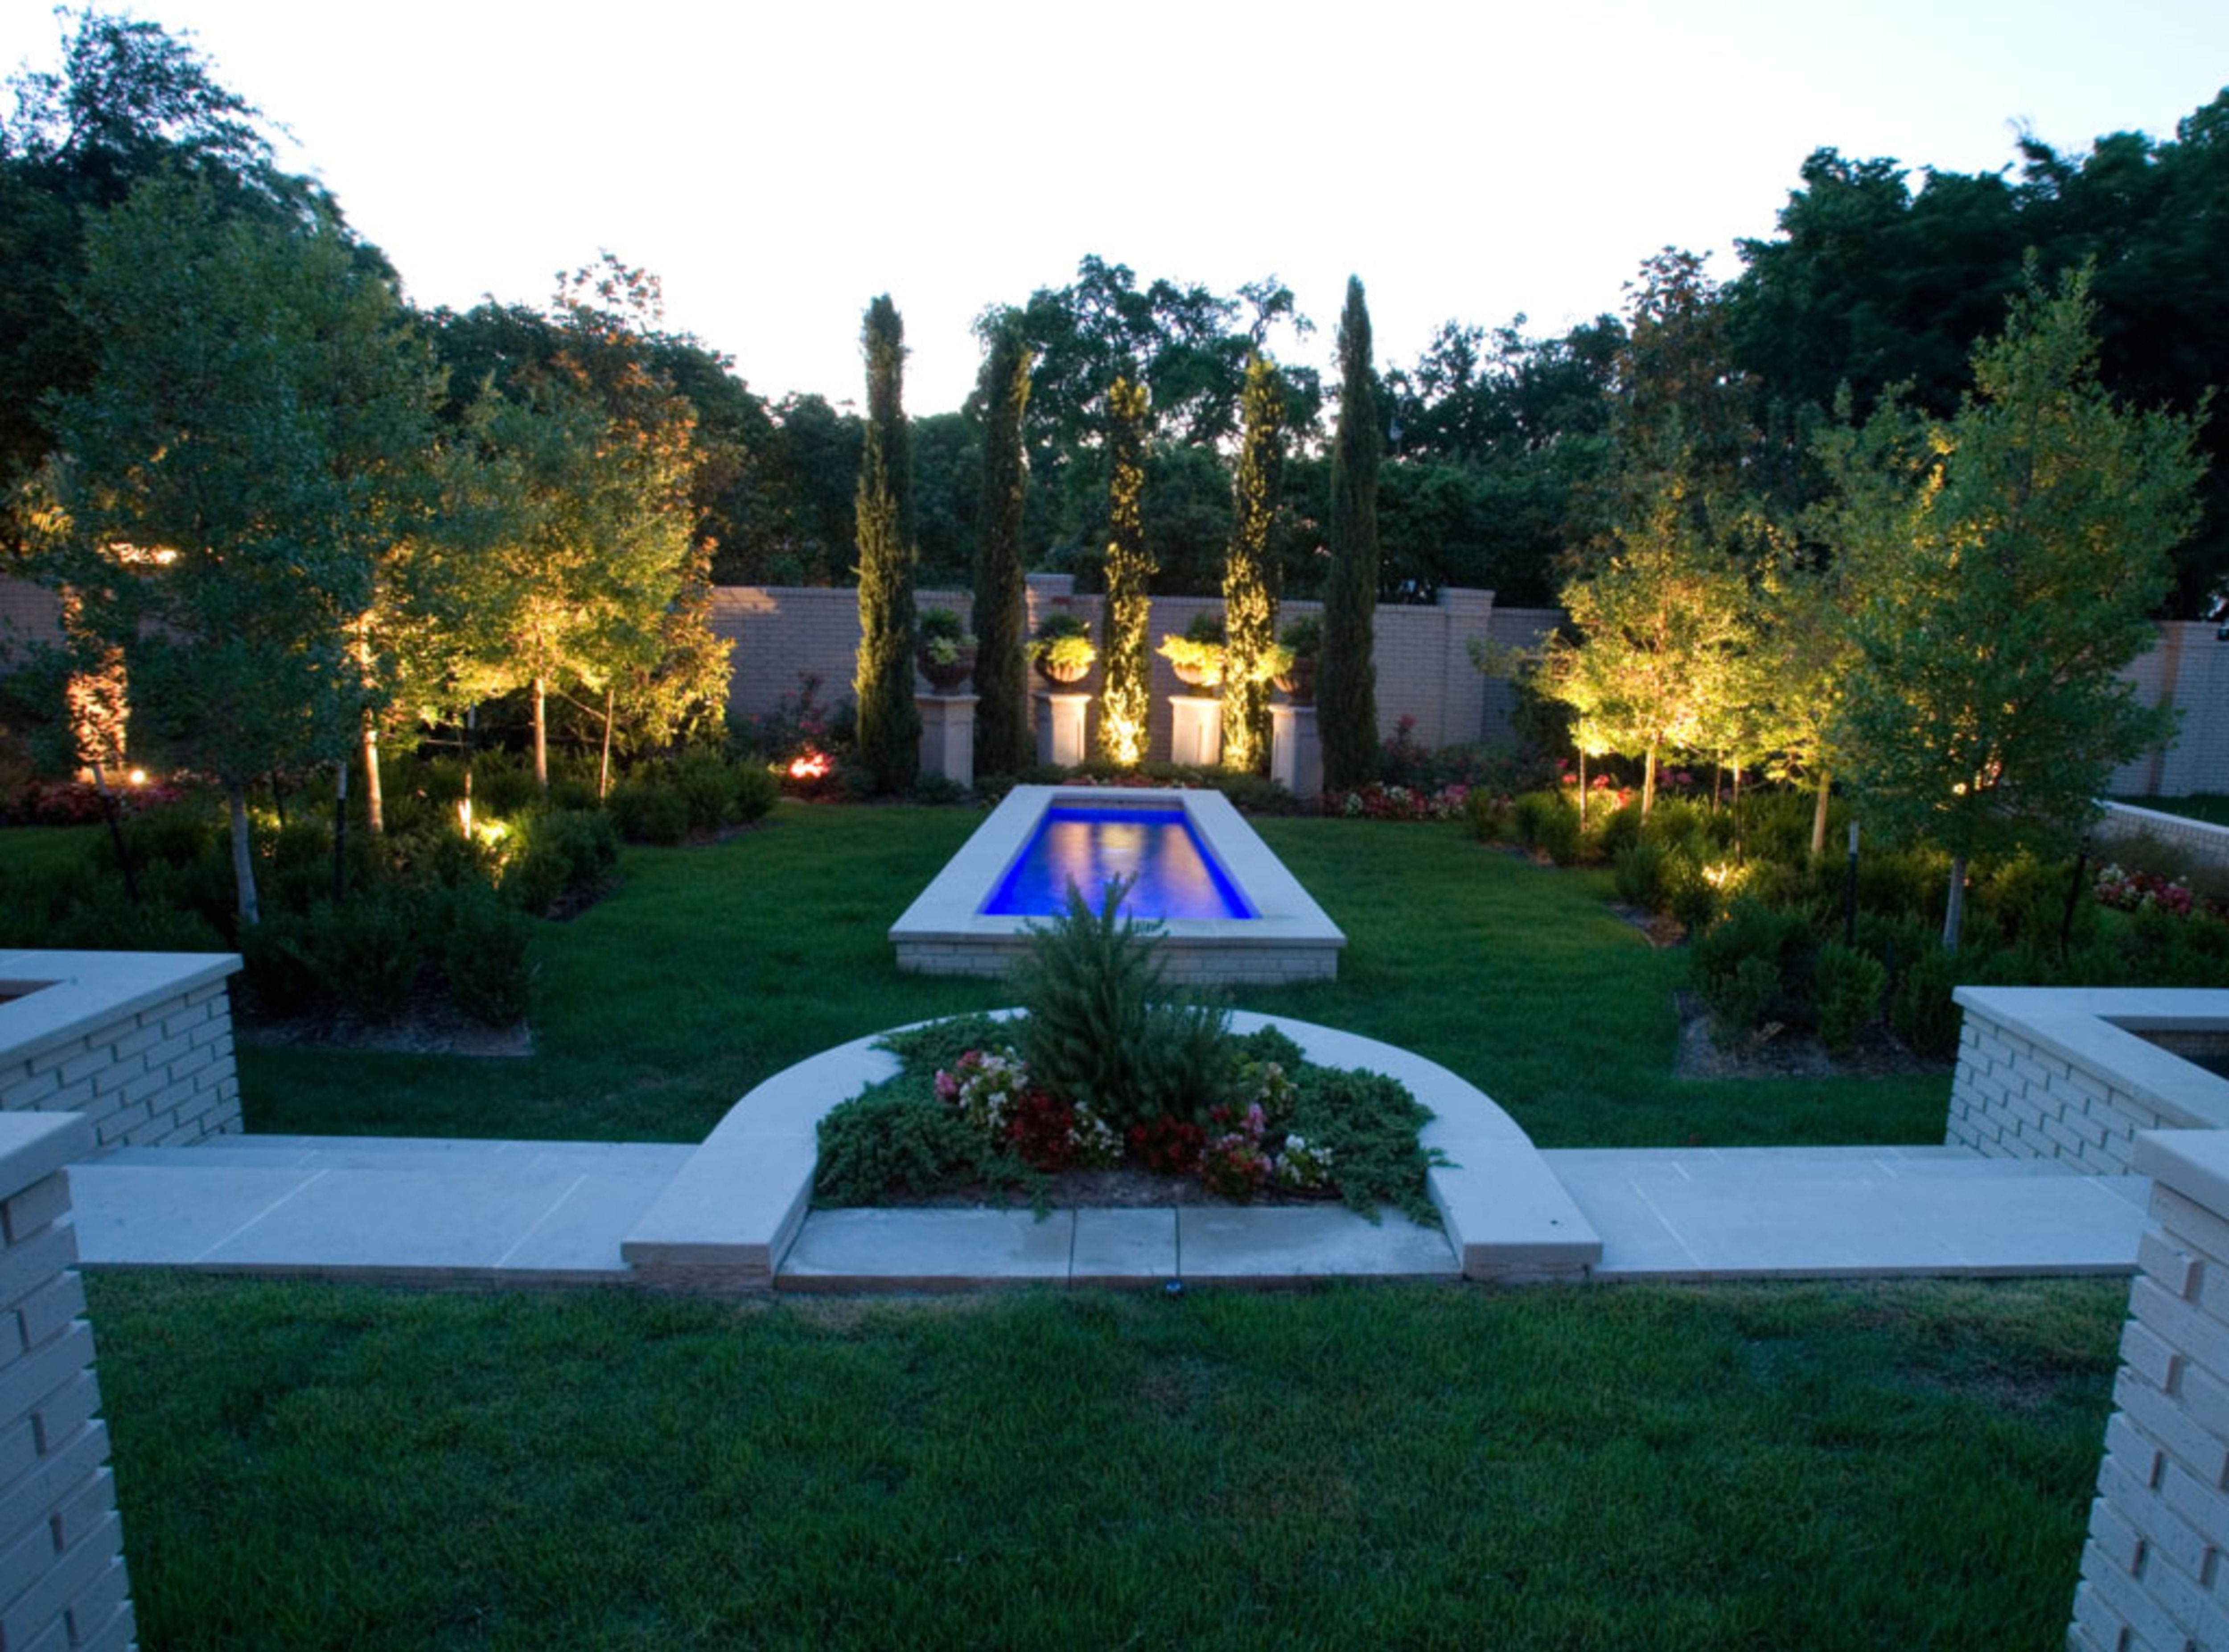 Fashionable Contemporary Led Post Lights For Mini Garden With Cool Landscaping Ideas For Front Of House Insight Inspiring Garden (View 6 of 20)